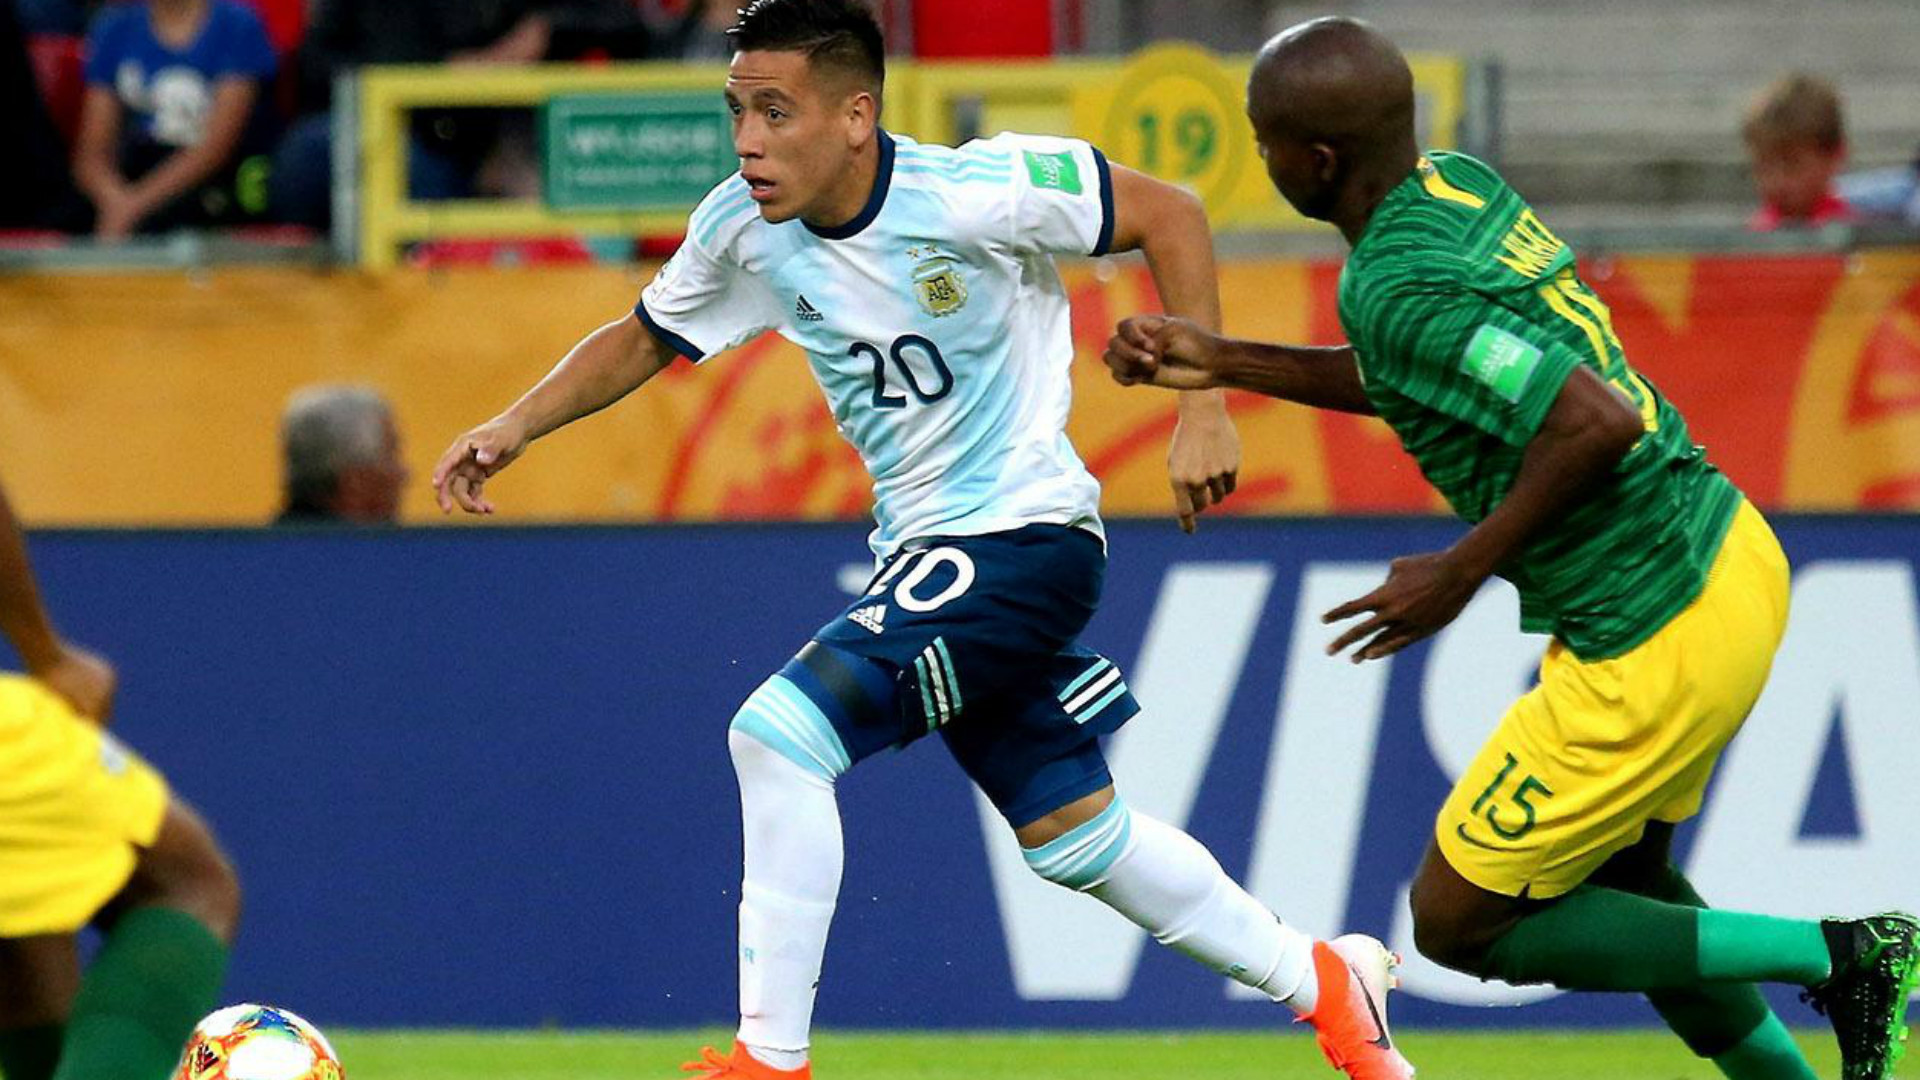 Ezequiel Barco Argentina South Africa U20 World Cup 2019